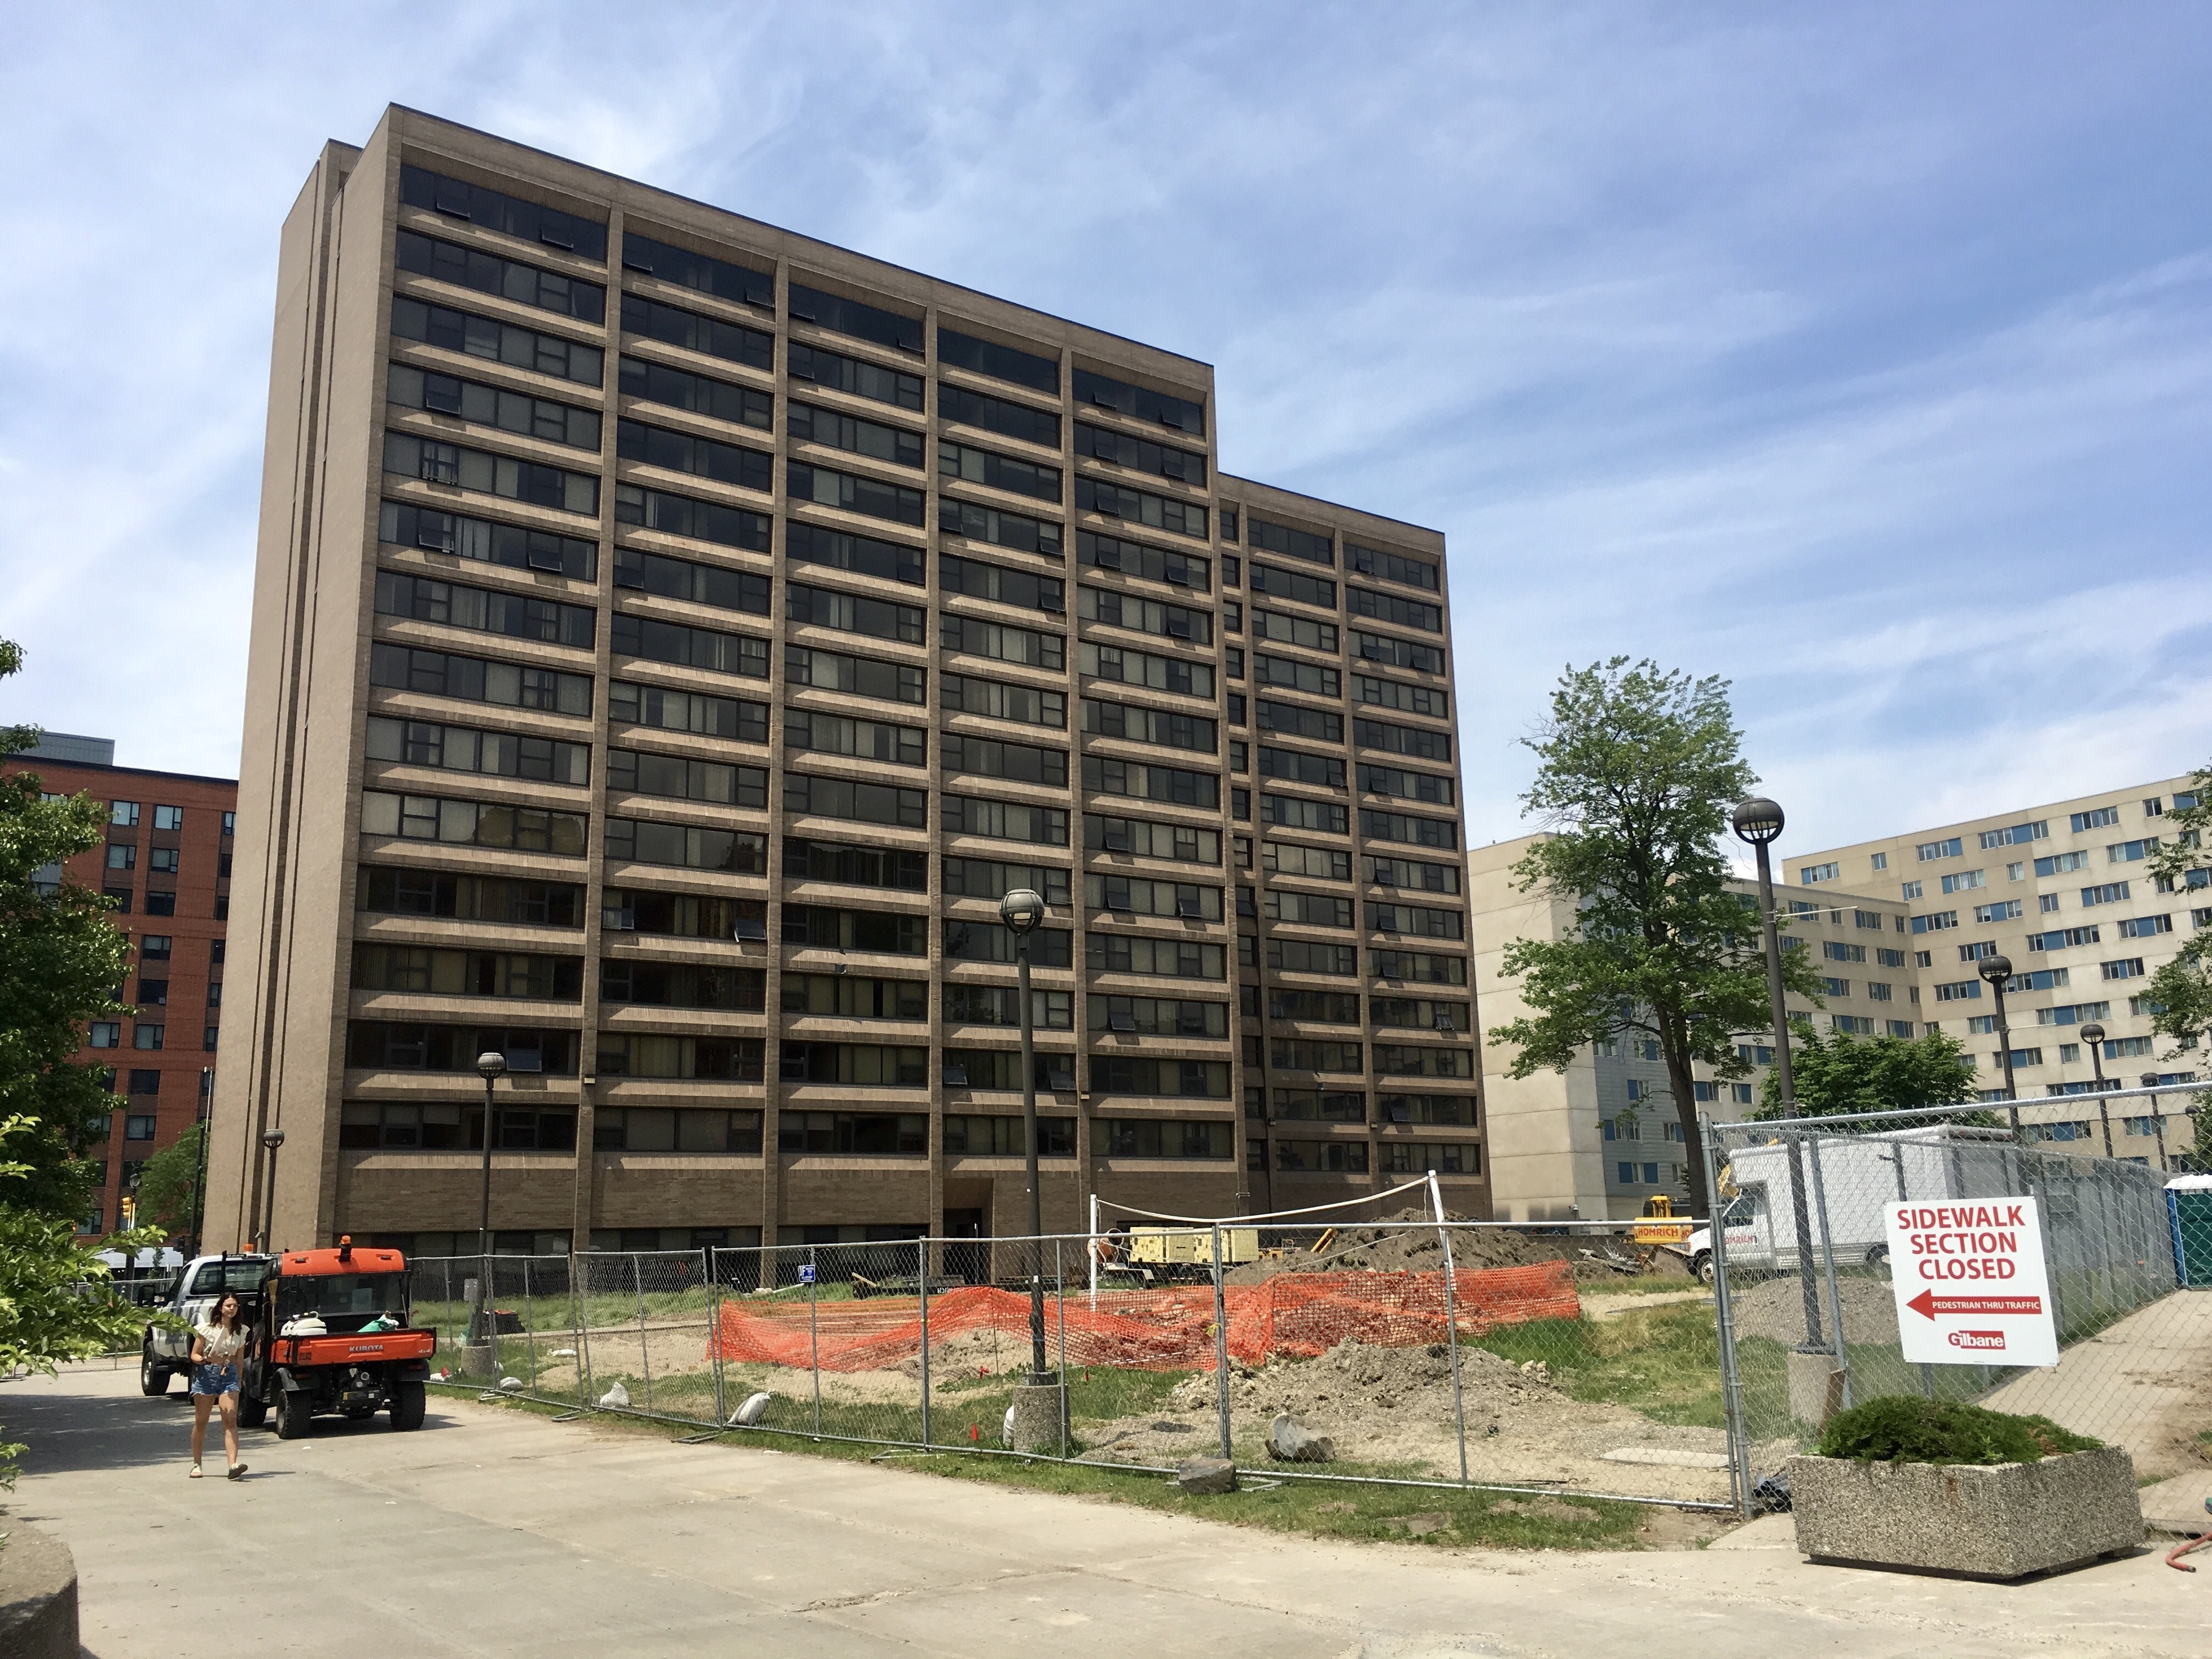 Wayne State To Demolish Problematic Helen L Deroy Apartments News Hits